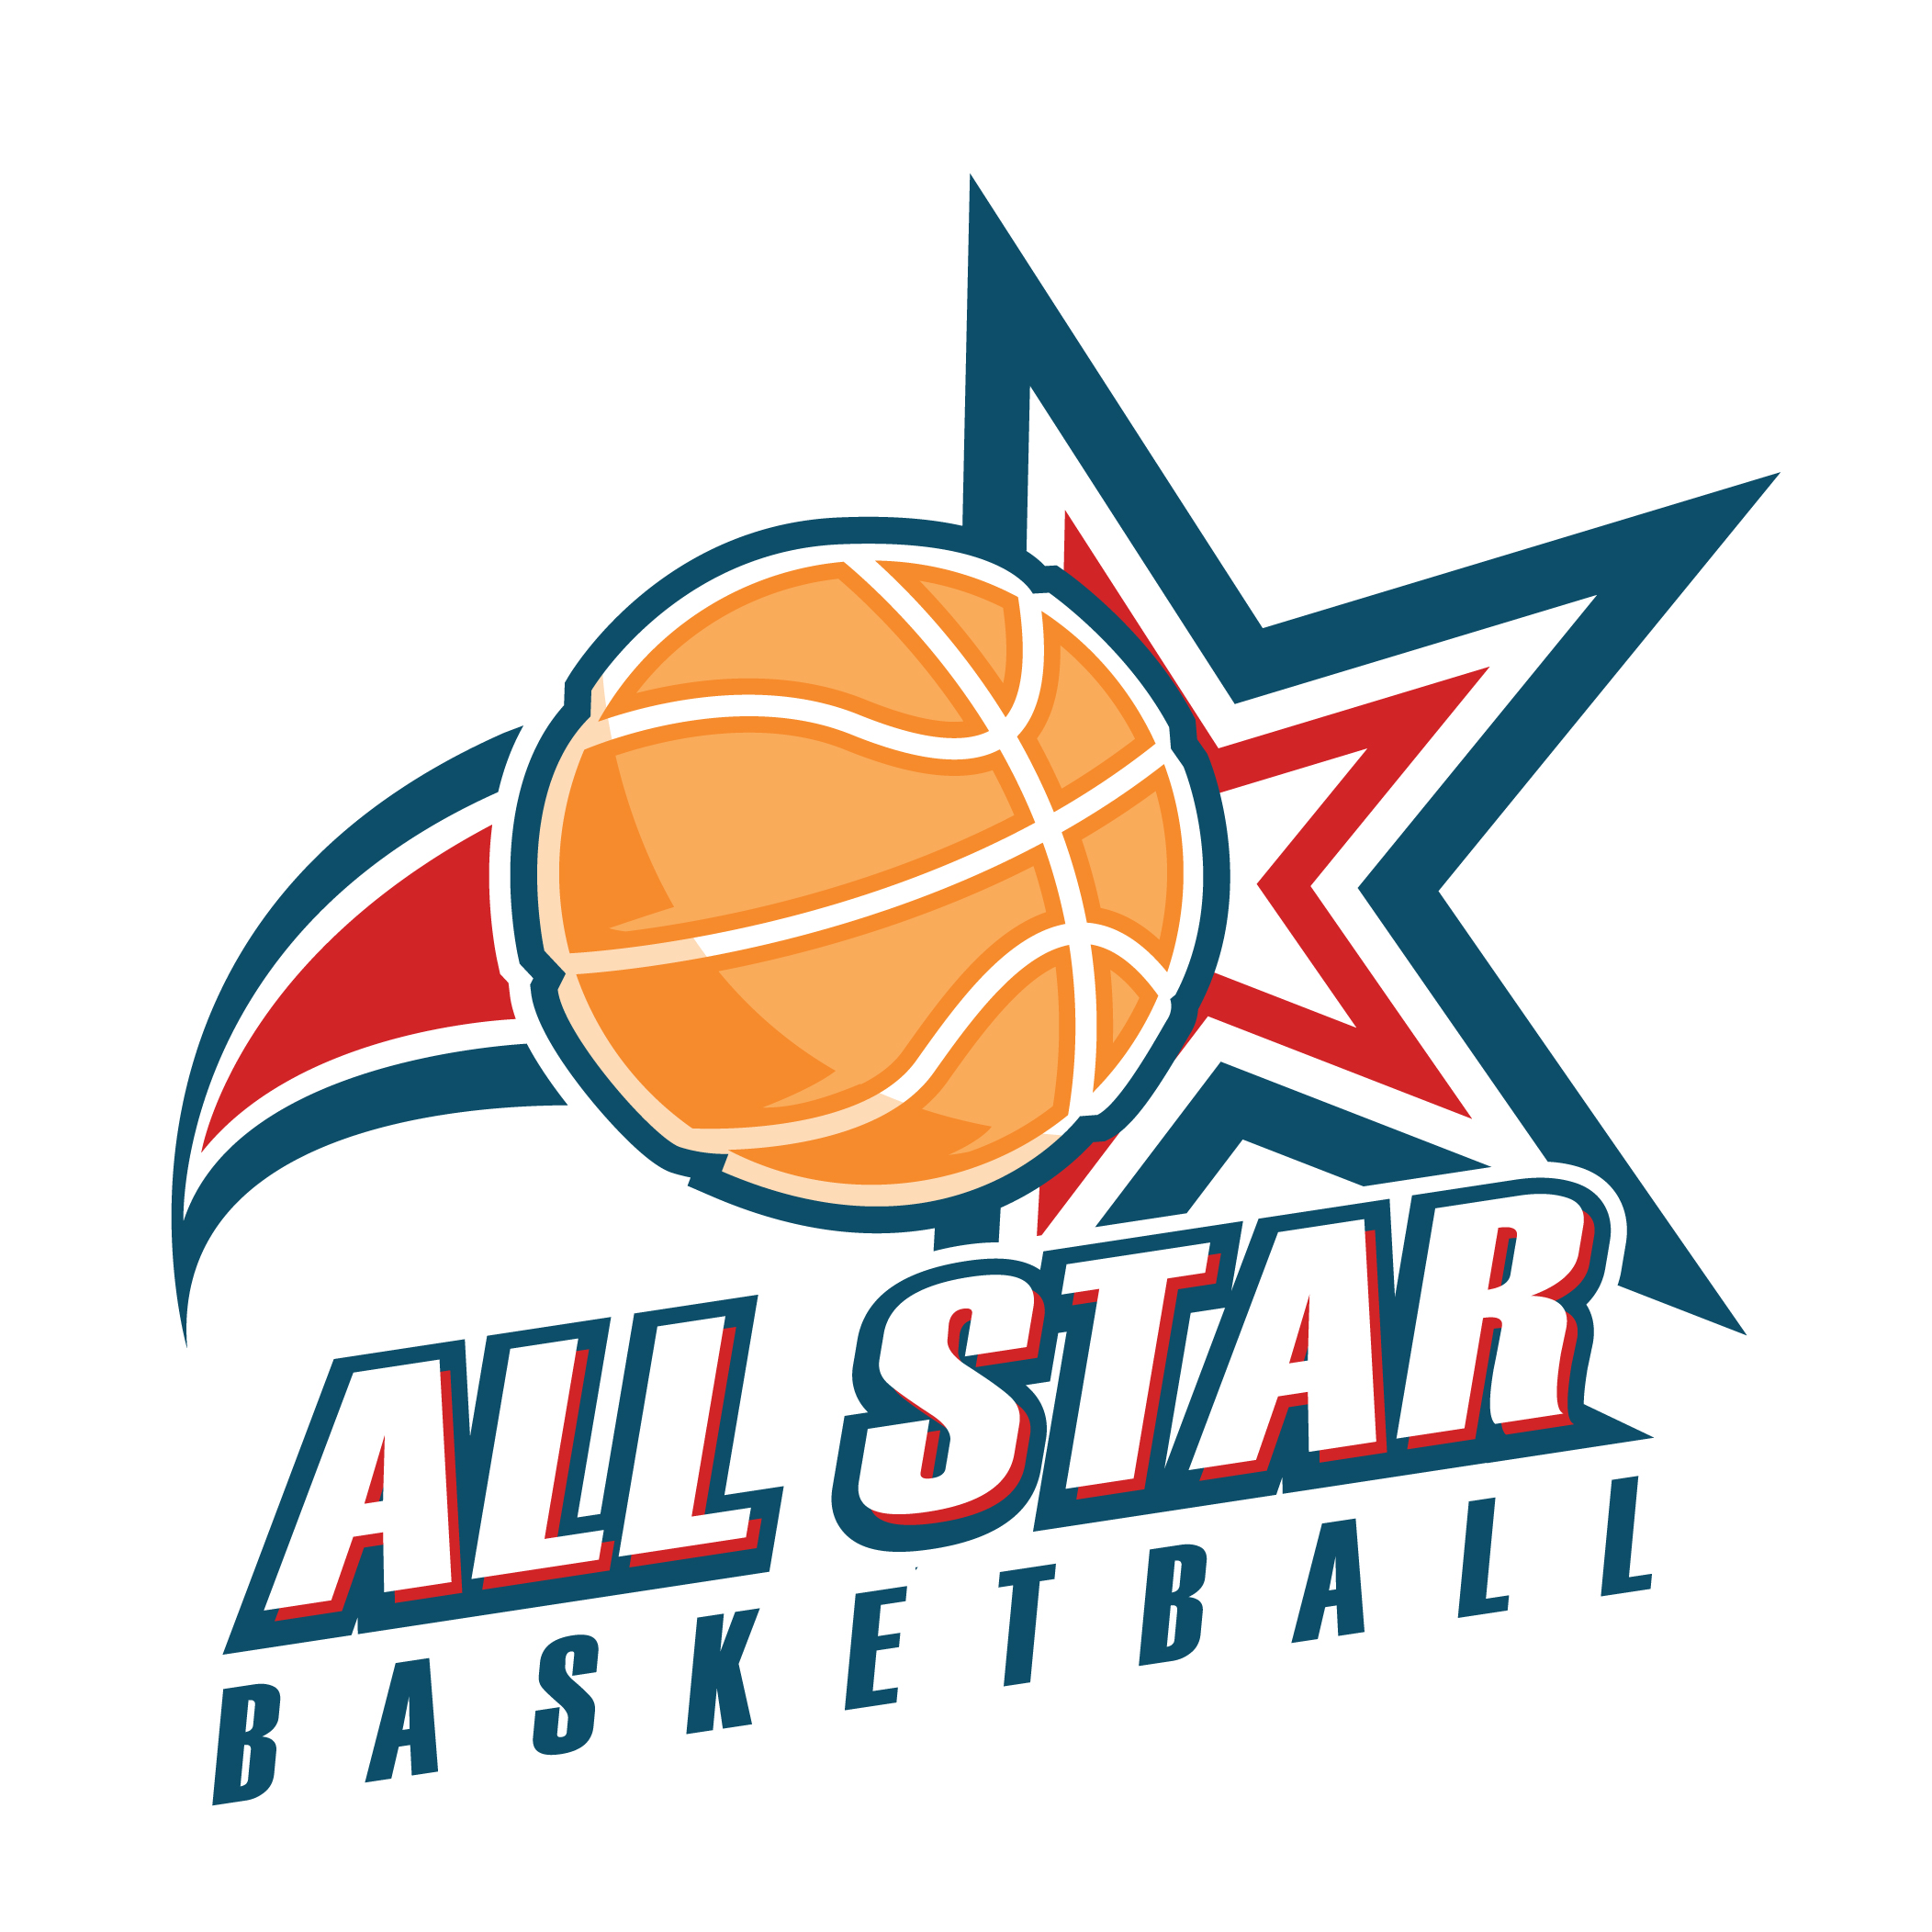 All Star Basketball Logo Wallpaper